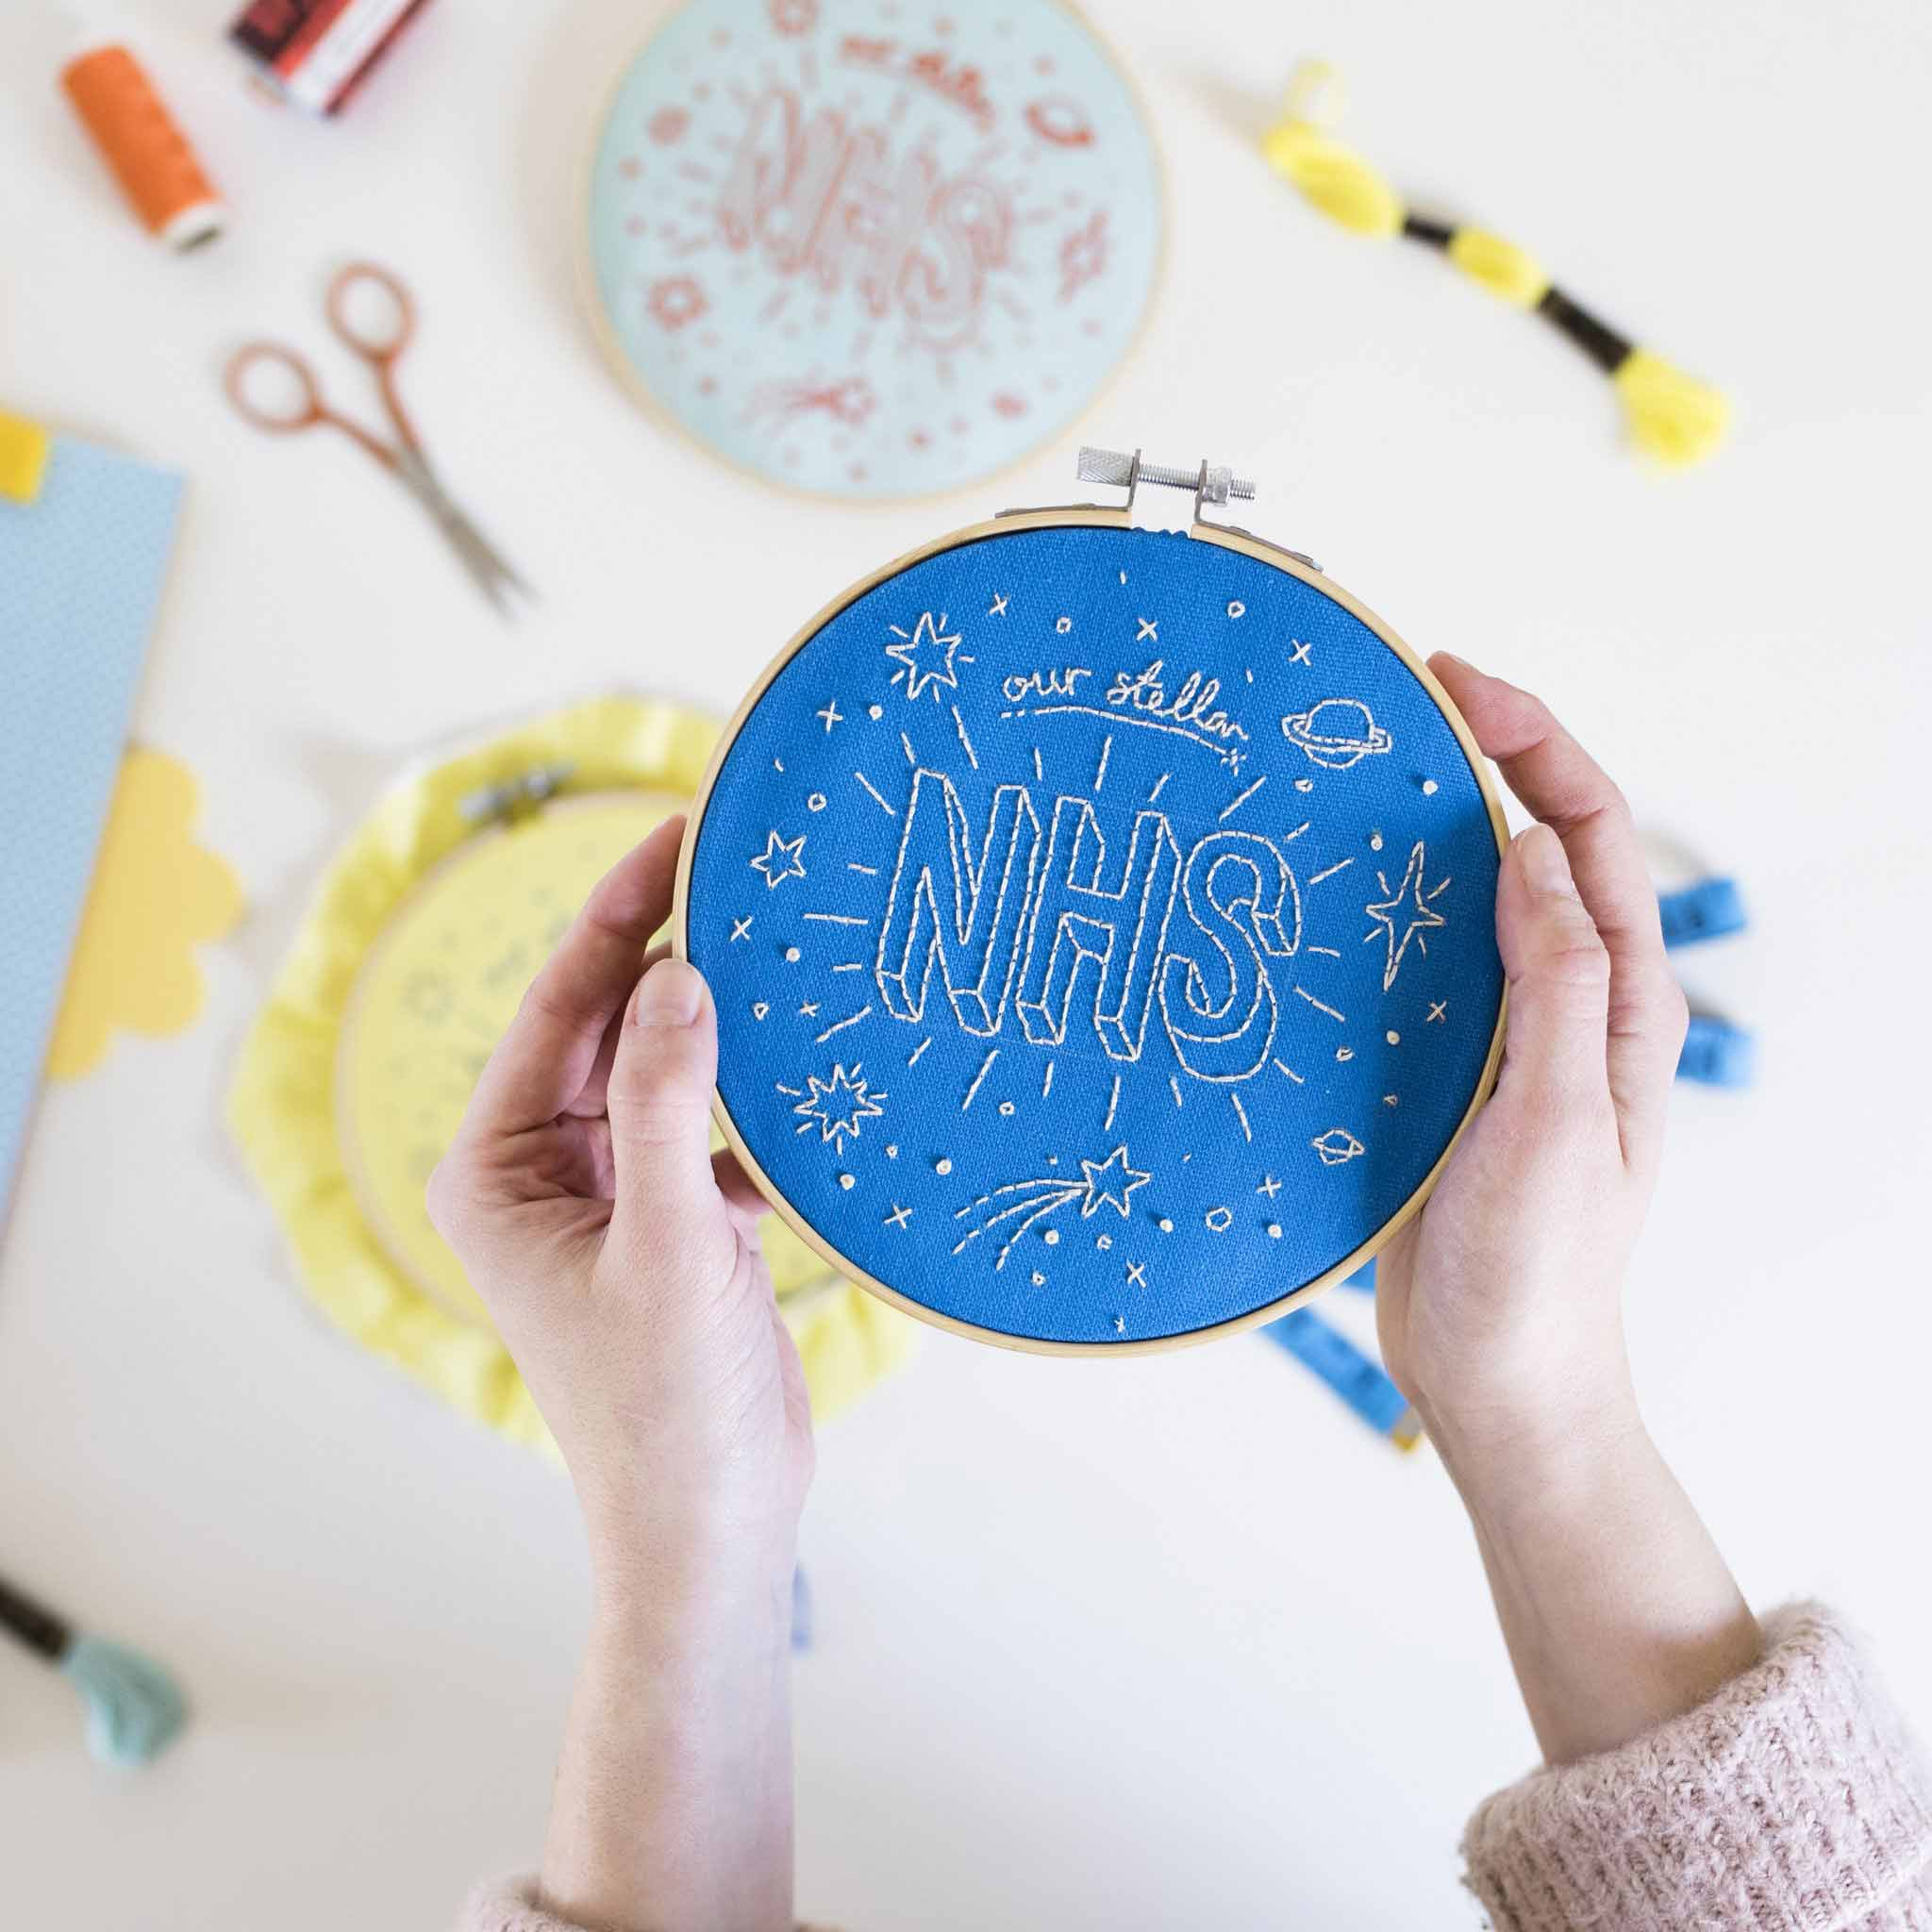 Our Stellar NHS Blue Embroidery Hoop Kit